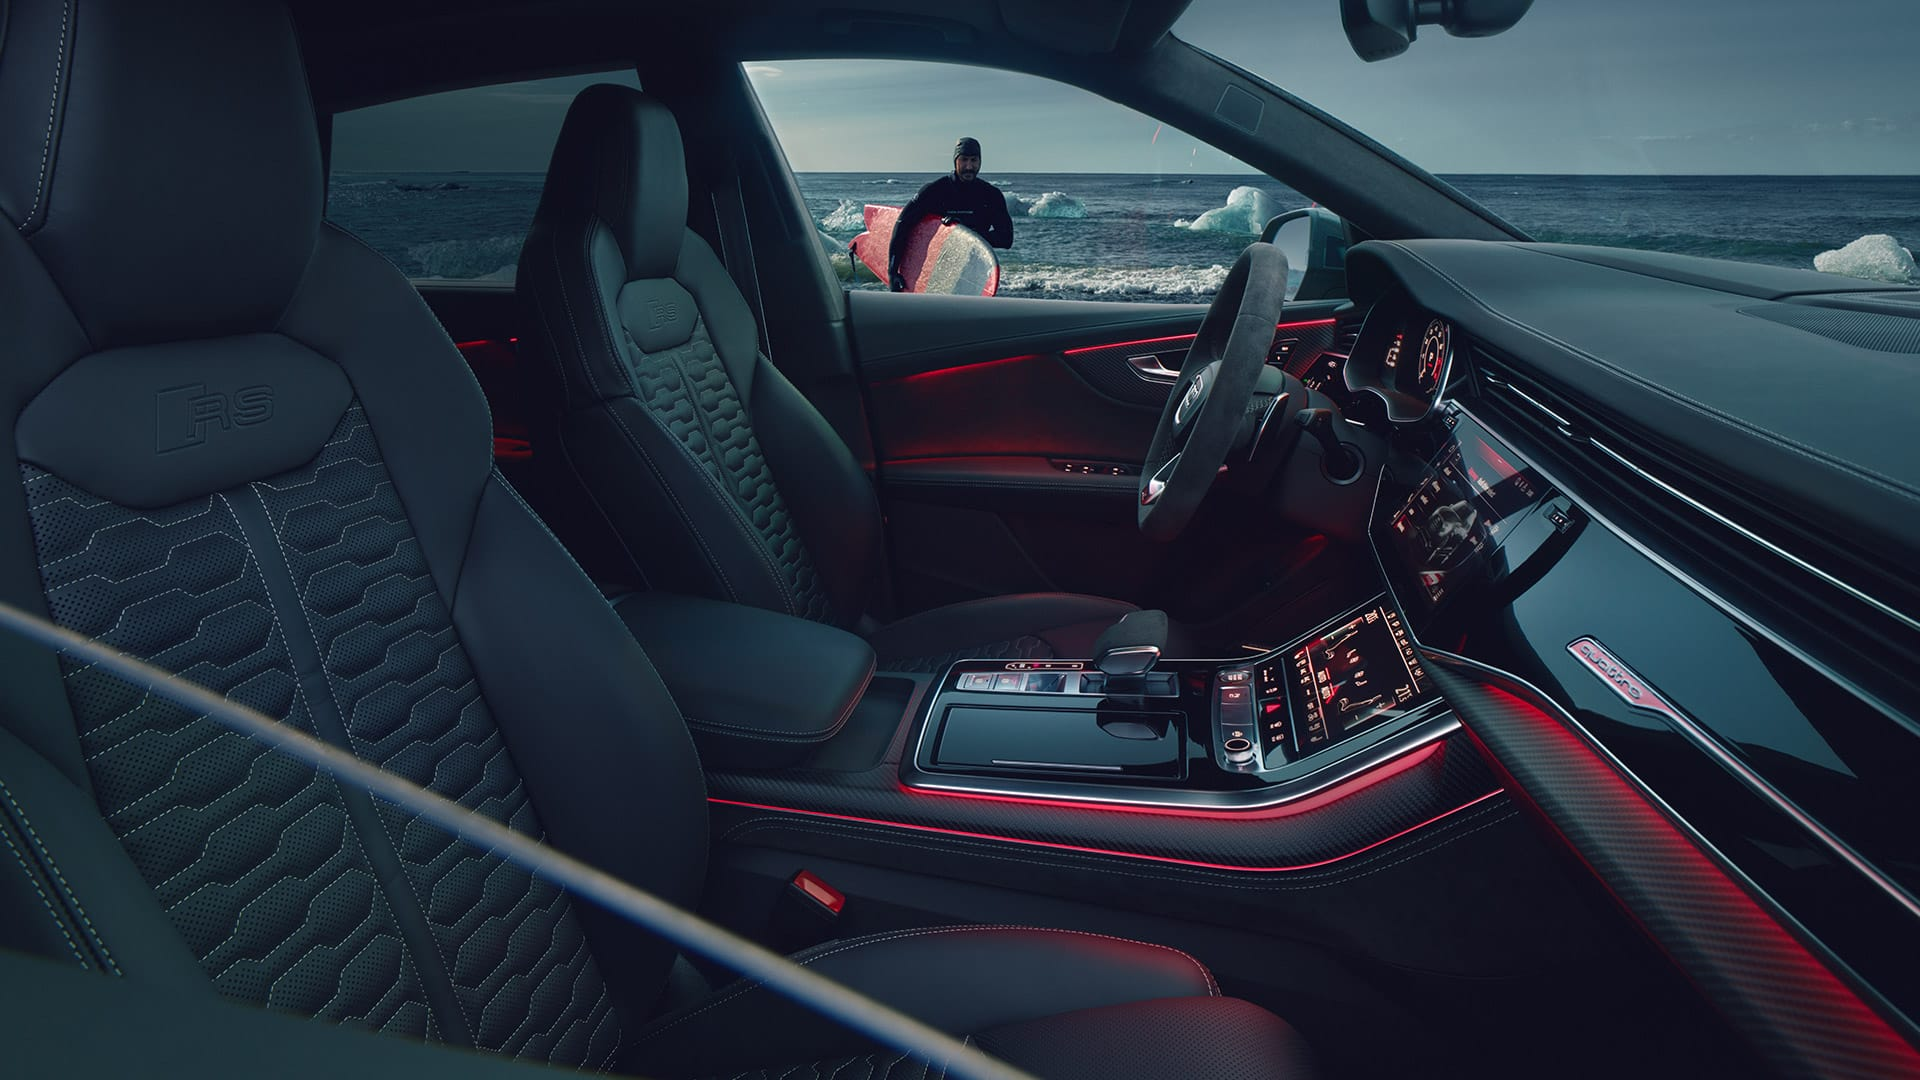 The cockpit of the Audi RS Q8 in red Contour/ambient lighting